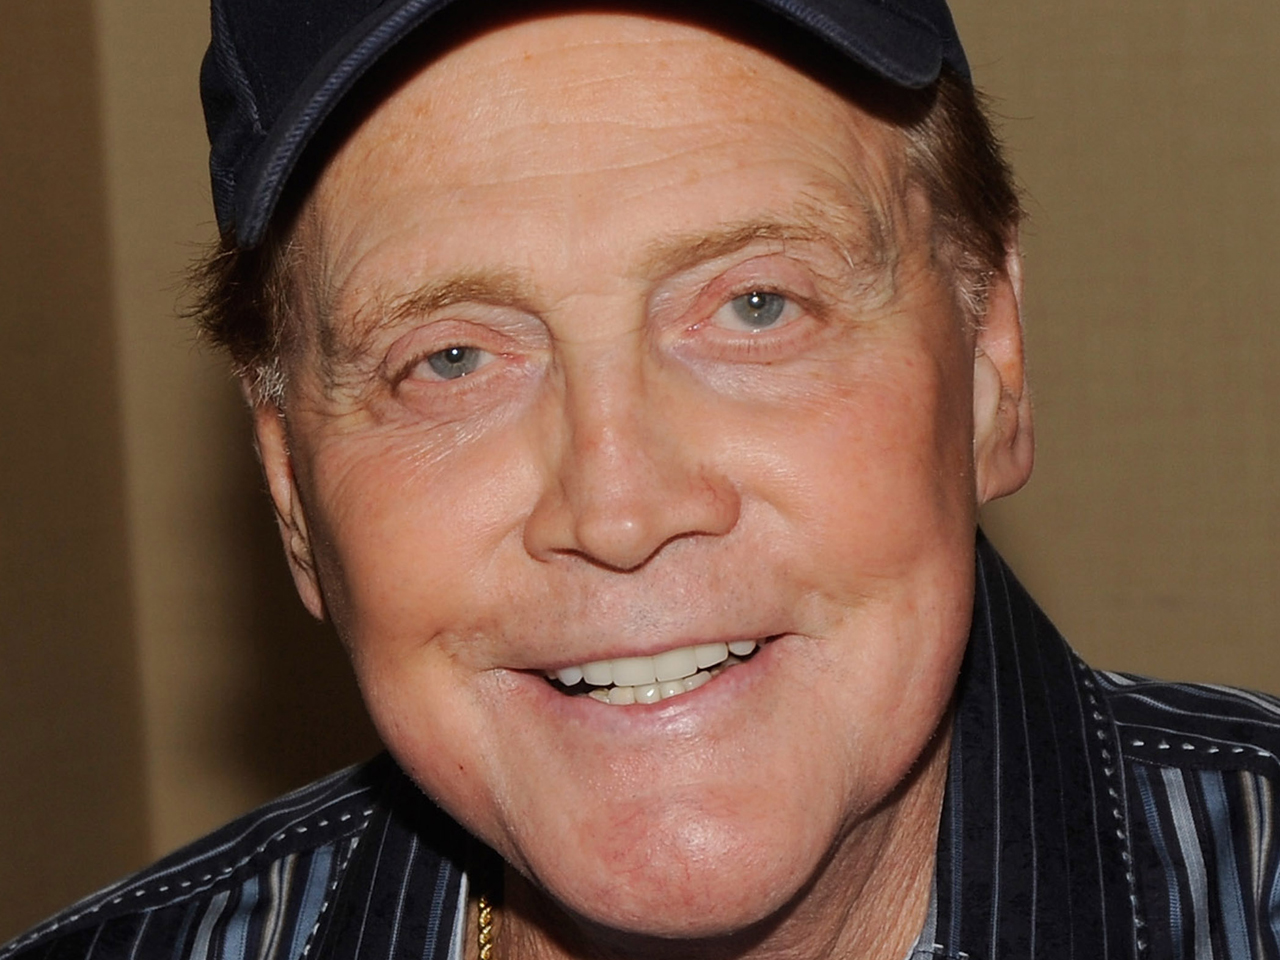 lee majors imdblee majors come again lyrics, lee majors wife kathy robinson, lee majors - unknown stuntman, lee majors height weight, lee majors come again, lee majors, lee majors 2015, lee majors and farrah fawcett, lee majors wiki, lee majors wife, lee majors rapper, lee majors unknown stuntman lyrics, lee majors net worth, lee majors biography, lee majors age, lee majors jr, lee majors imdb, lee majors ii, lee majors death, lee majors hearing aid